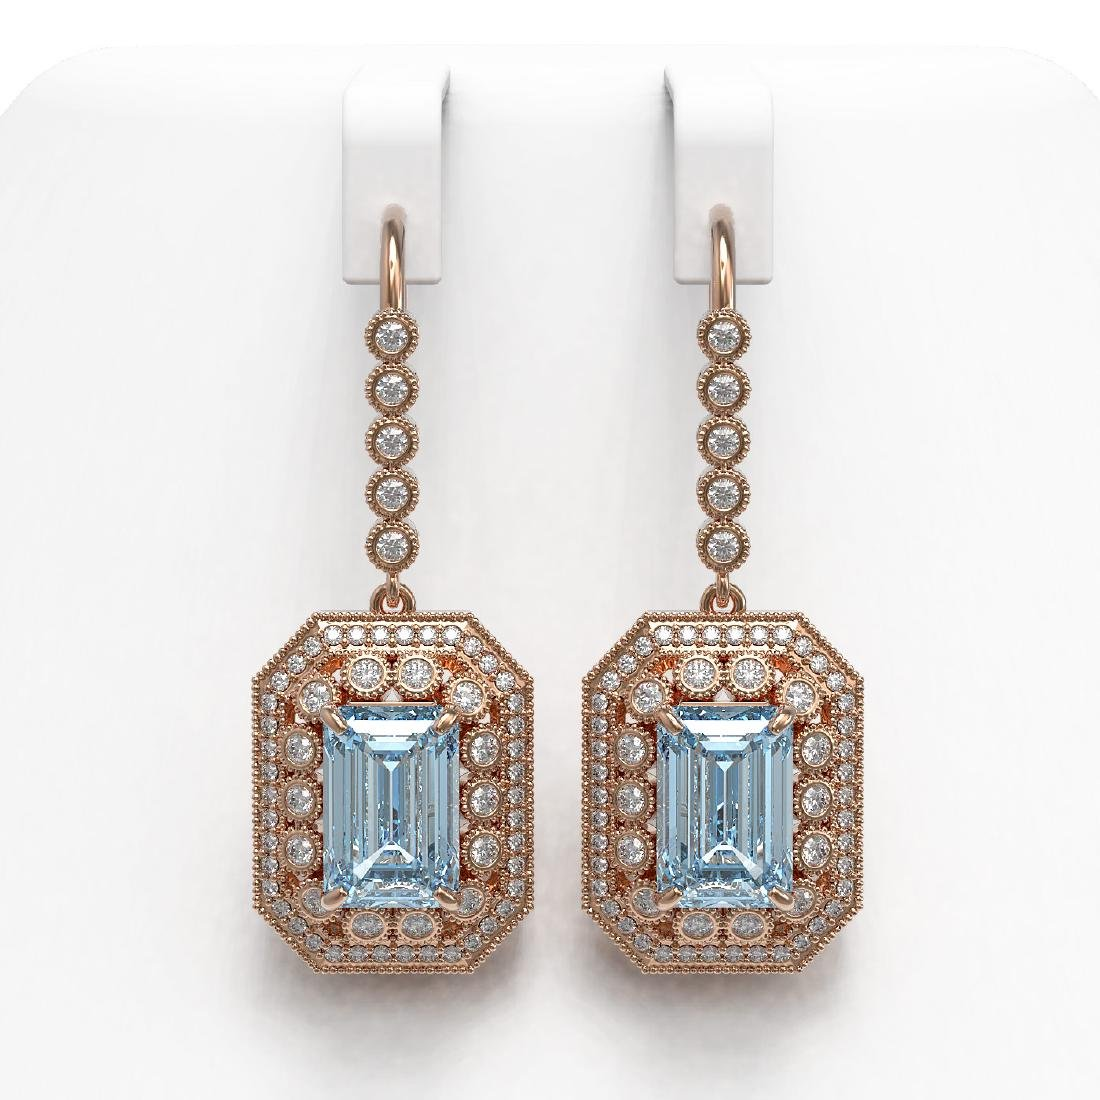 11.32 ctw Aquamarine & Diamond Earrings 14K Rose Gold -